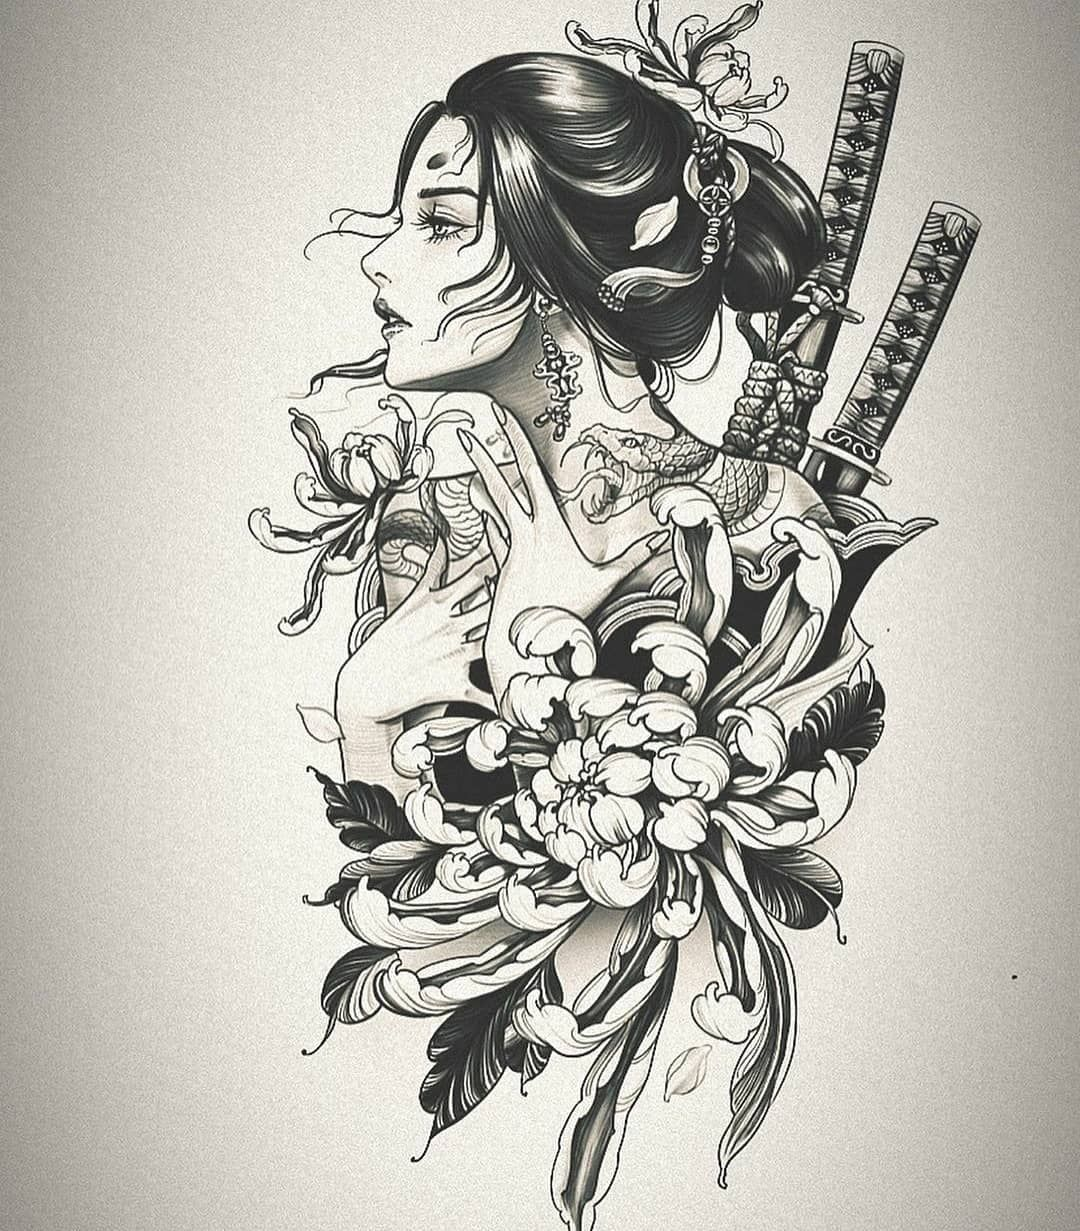 Tattoo Designs Gallery On Instagram Tattooidea Awesome Pieces From Cindy Chronicink I In 2020 Japanese Tattoo Samurai Tattoo Design Japanese Tattoo Designs